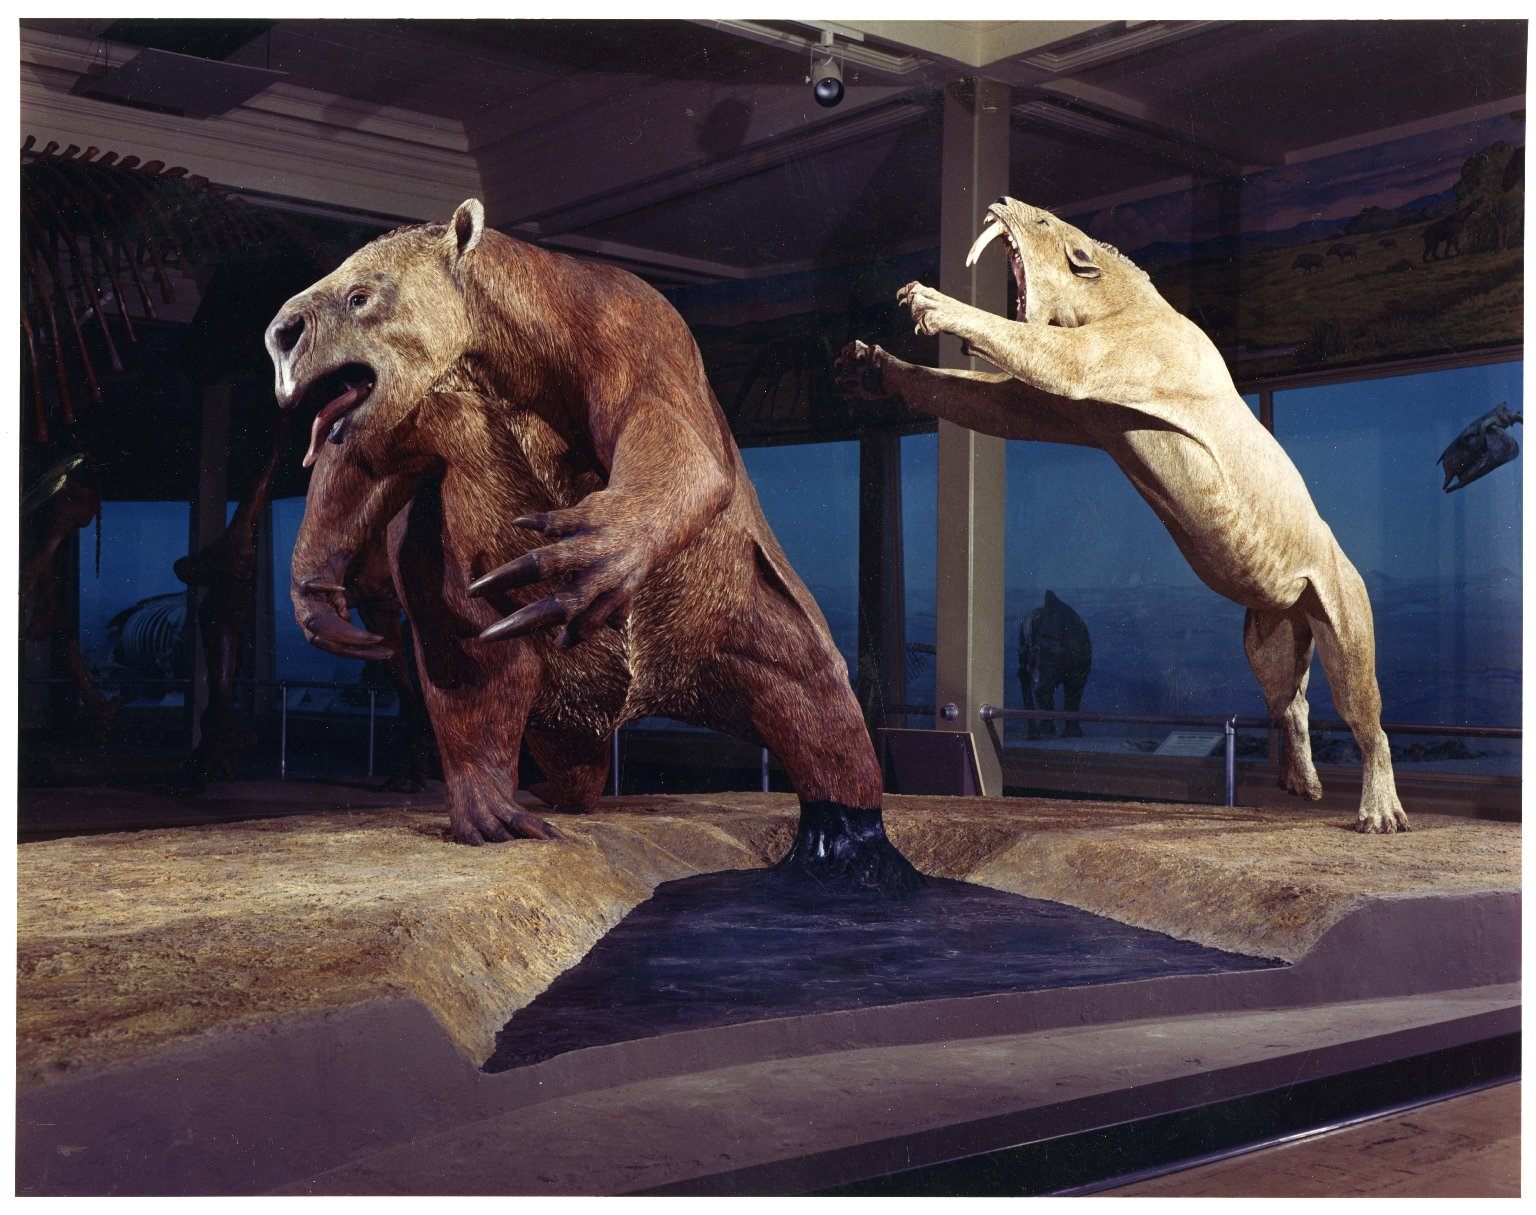 La Brea Tar Pit with giant sloth and sabertooth cat